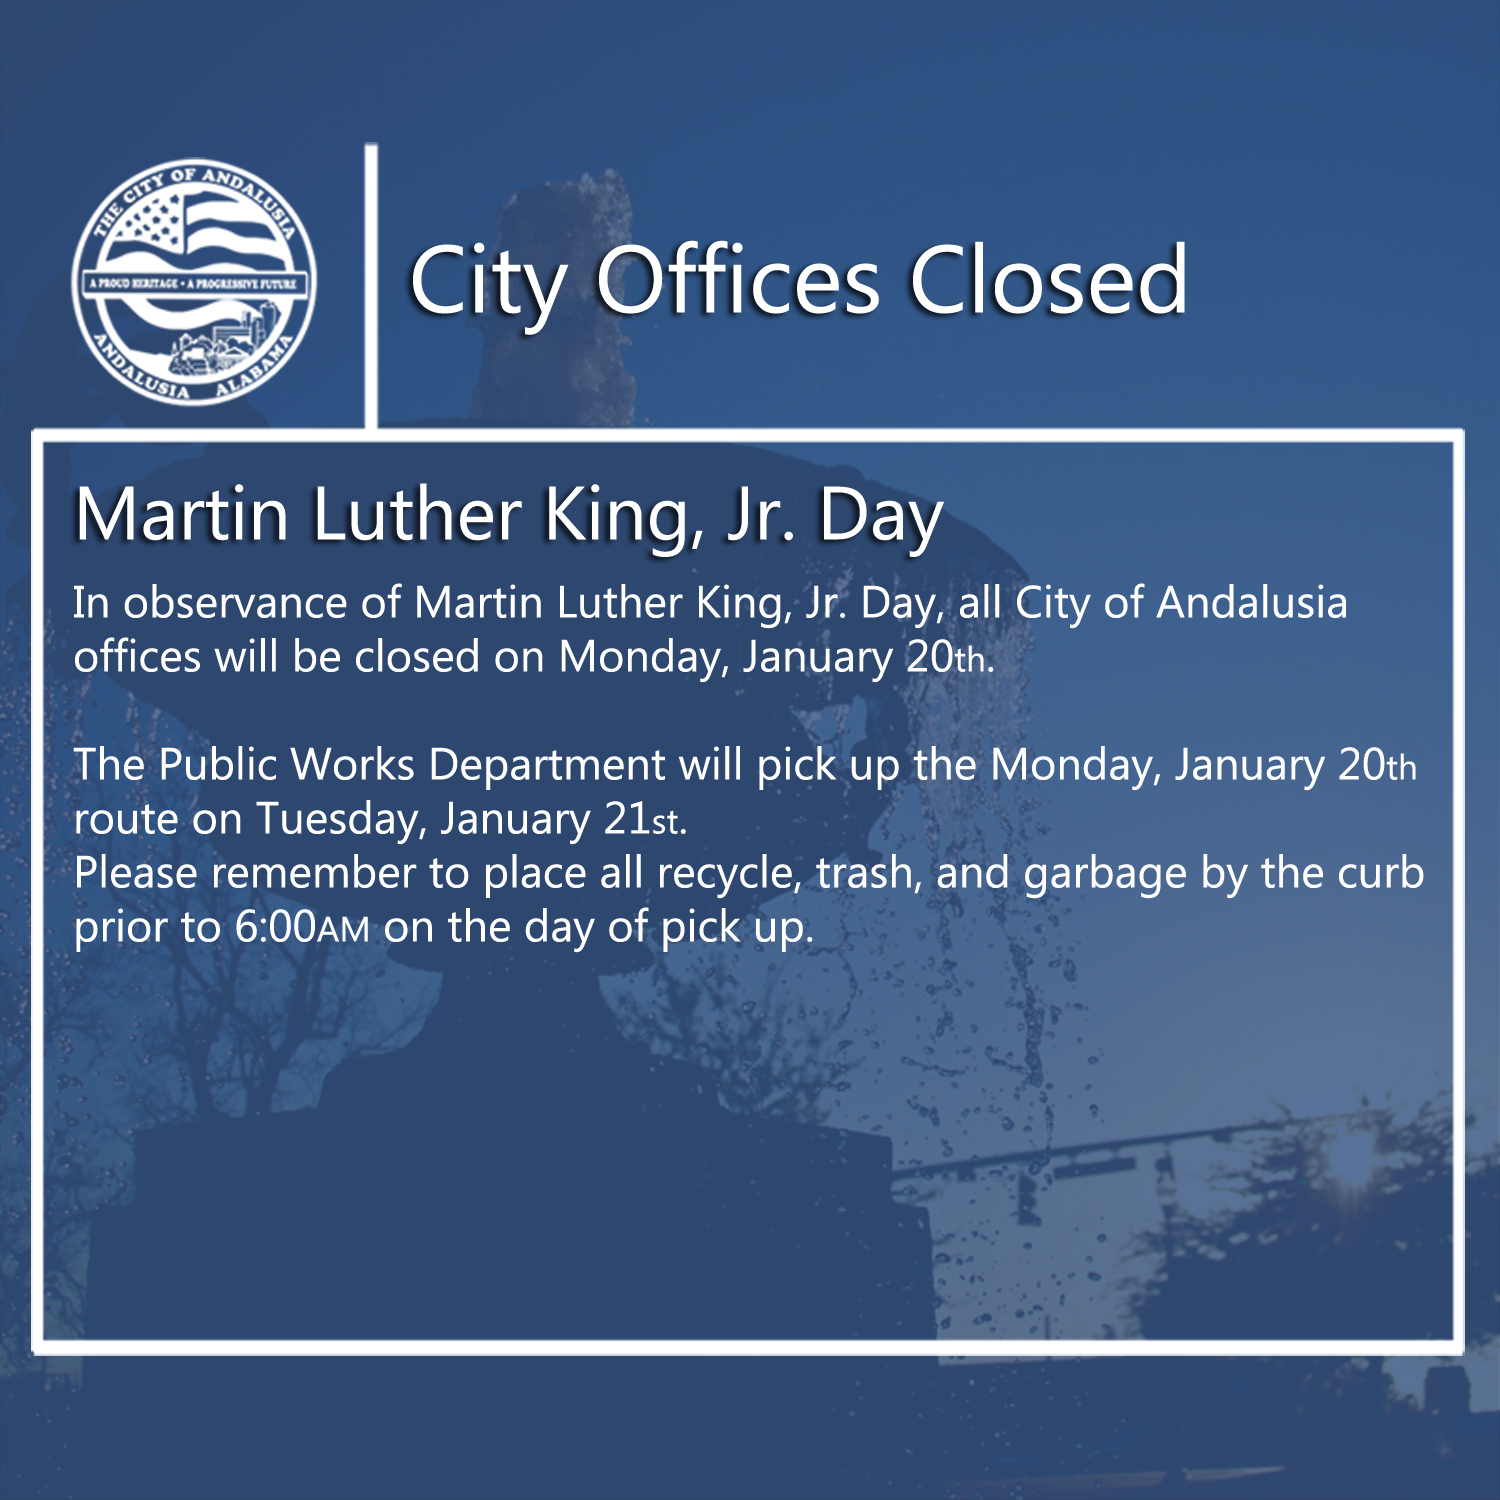 Facebook City Offices Closed Jan 20th